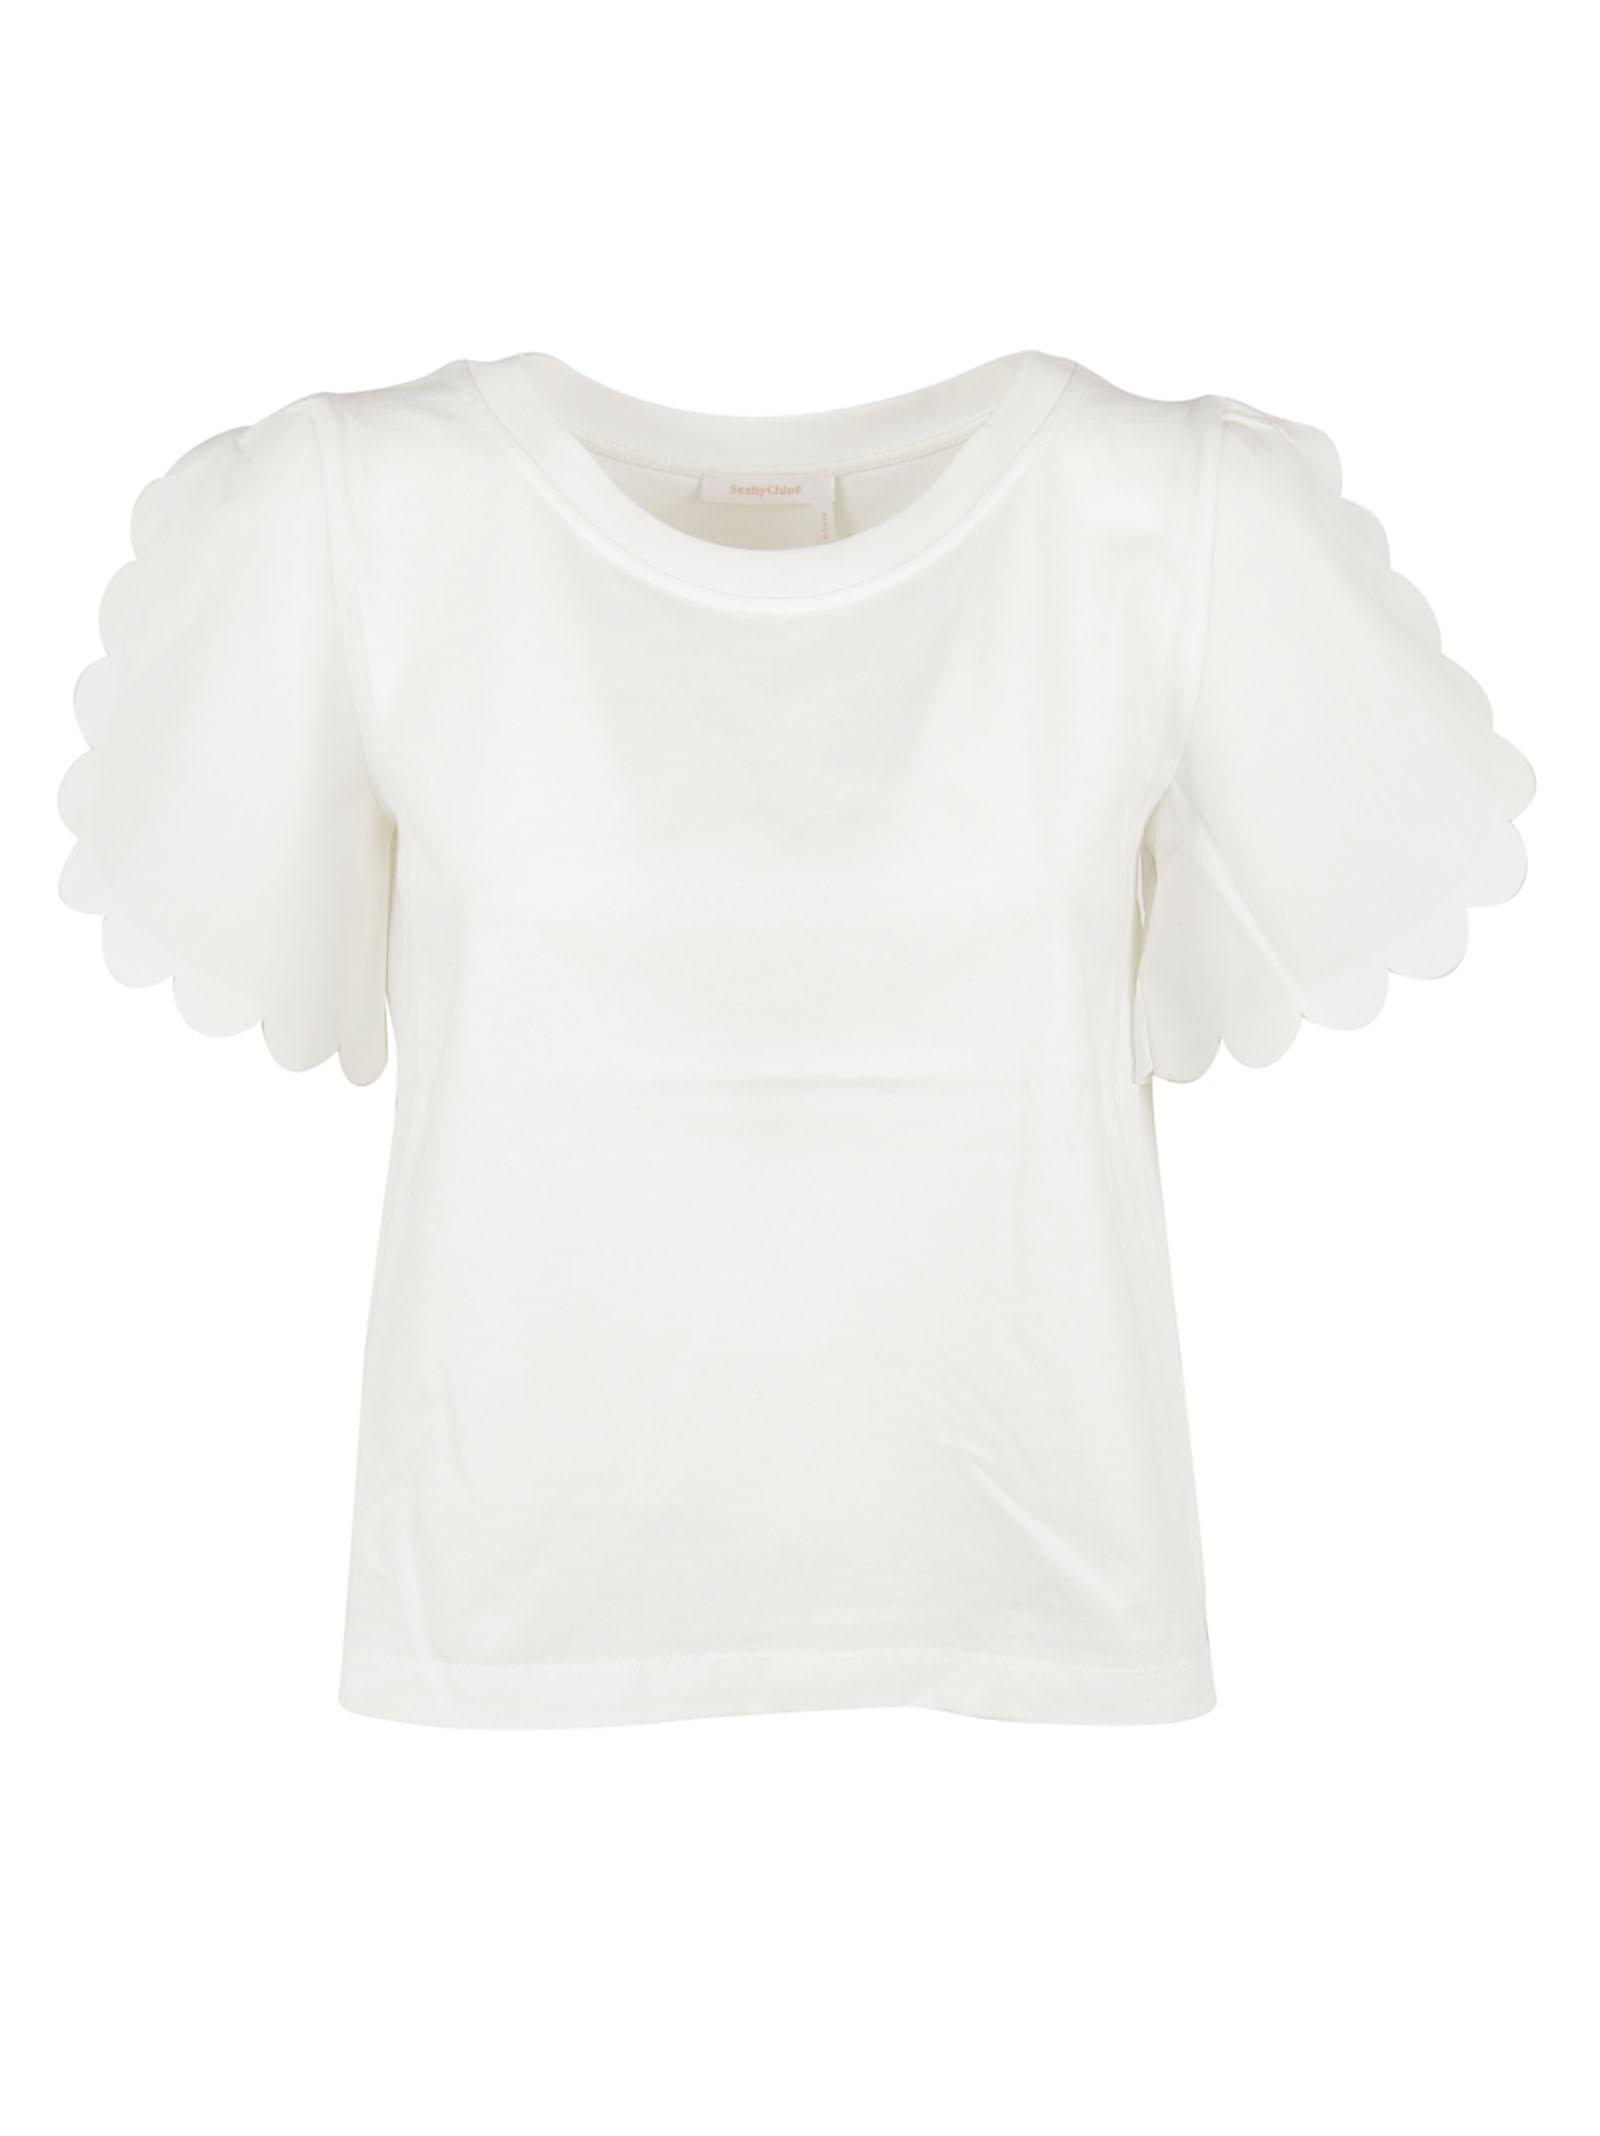 See By Chloé See by Chloé Scalloped T-shirt